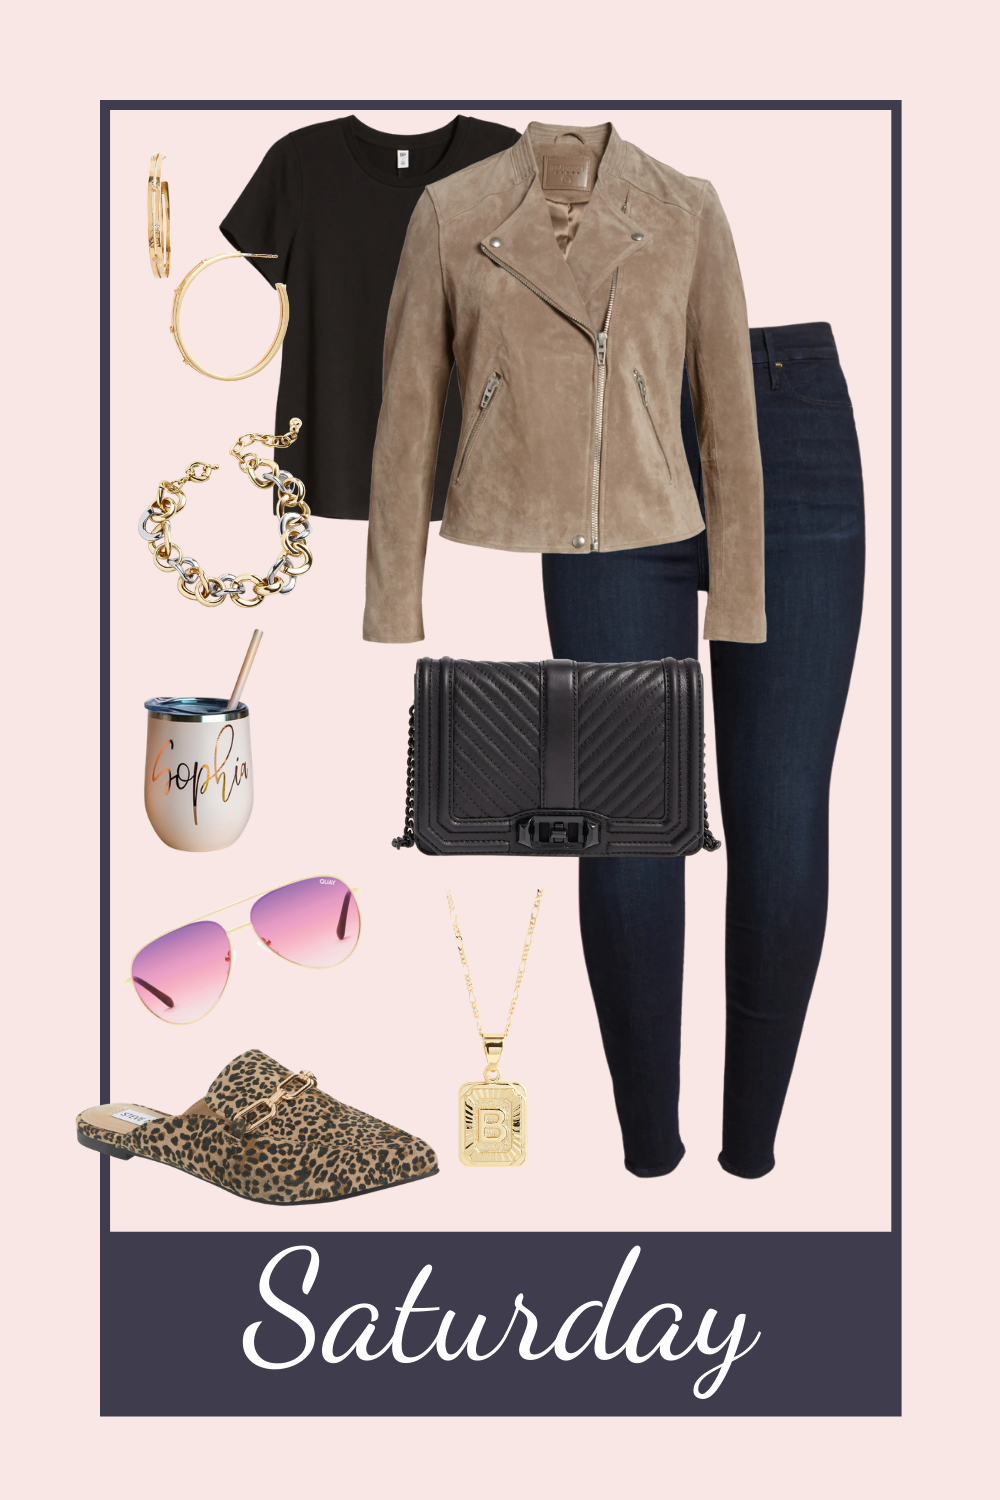 mom and dad date night. date night outfit. date night outfit inspiration. casual date night. wine tasting outfit ideas